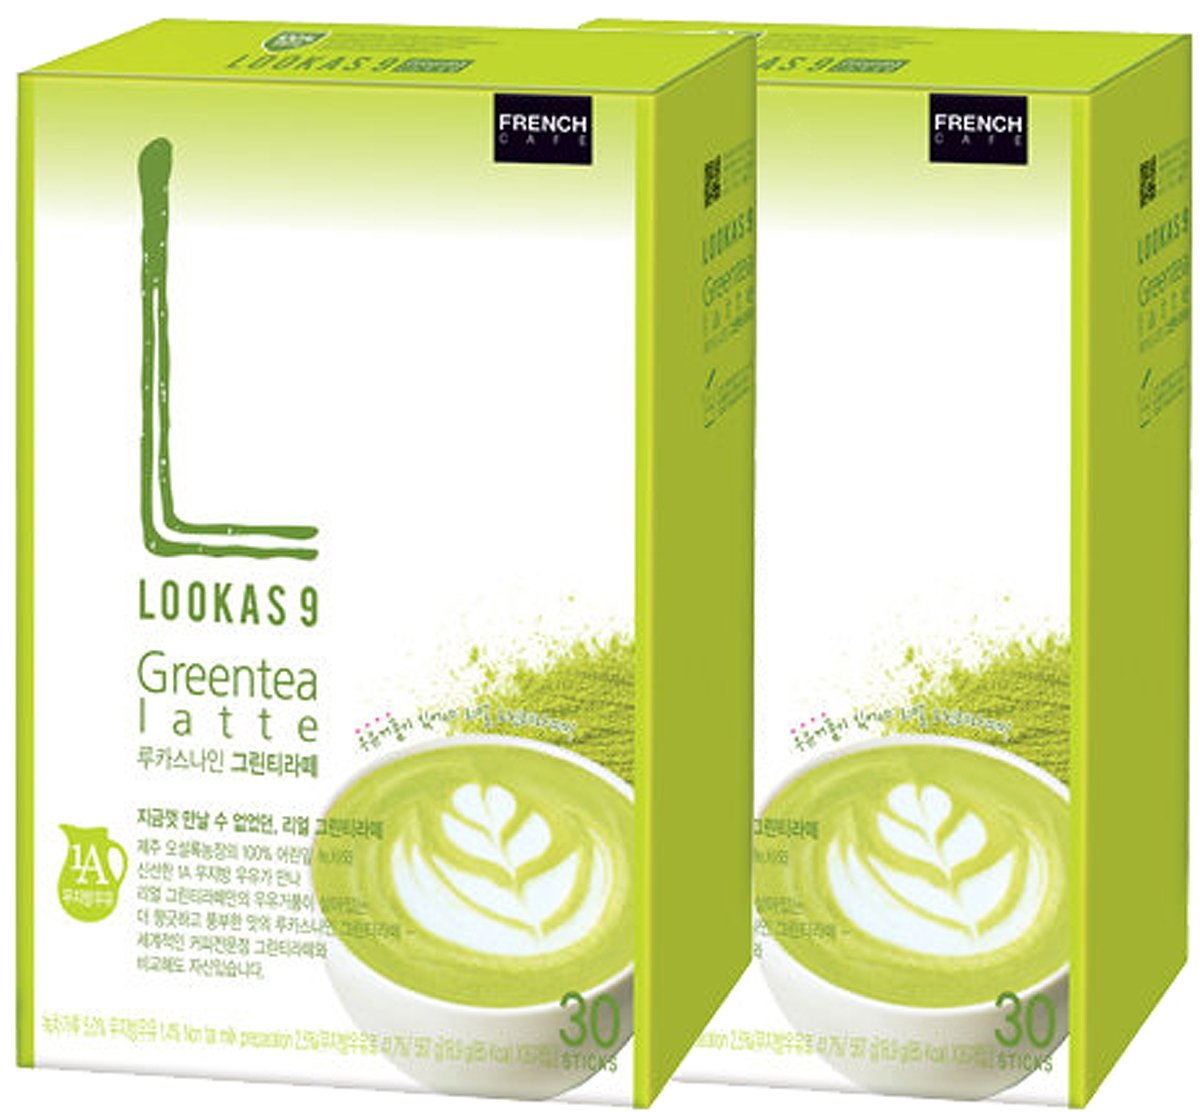 LOOKAS 9 Nine Green Tea Latte 60T Coffee Mix Korea Namyang French Cafe by Namyang